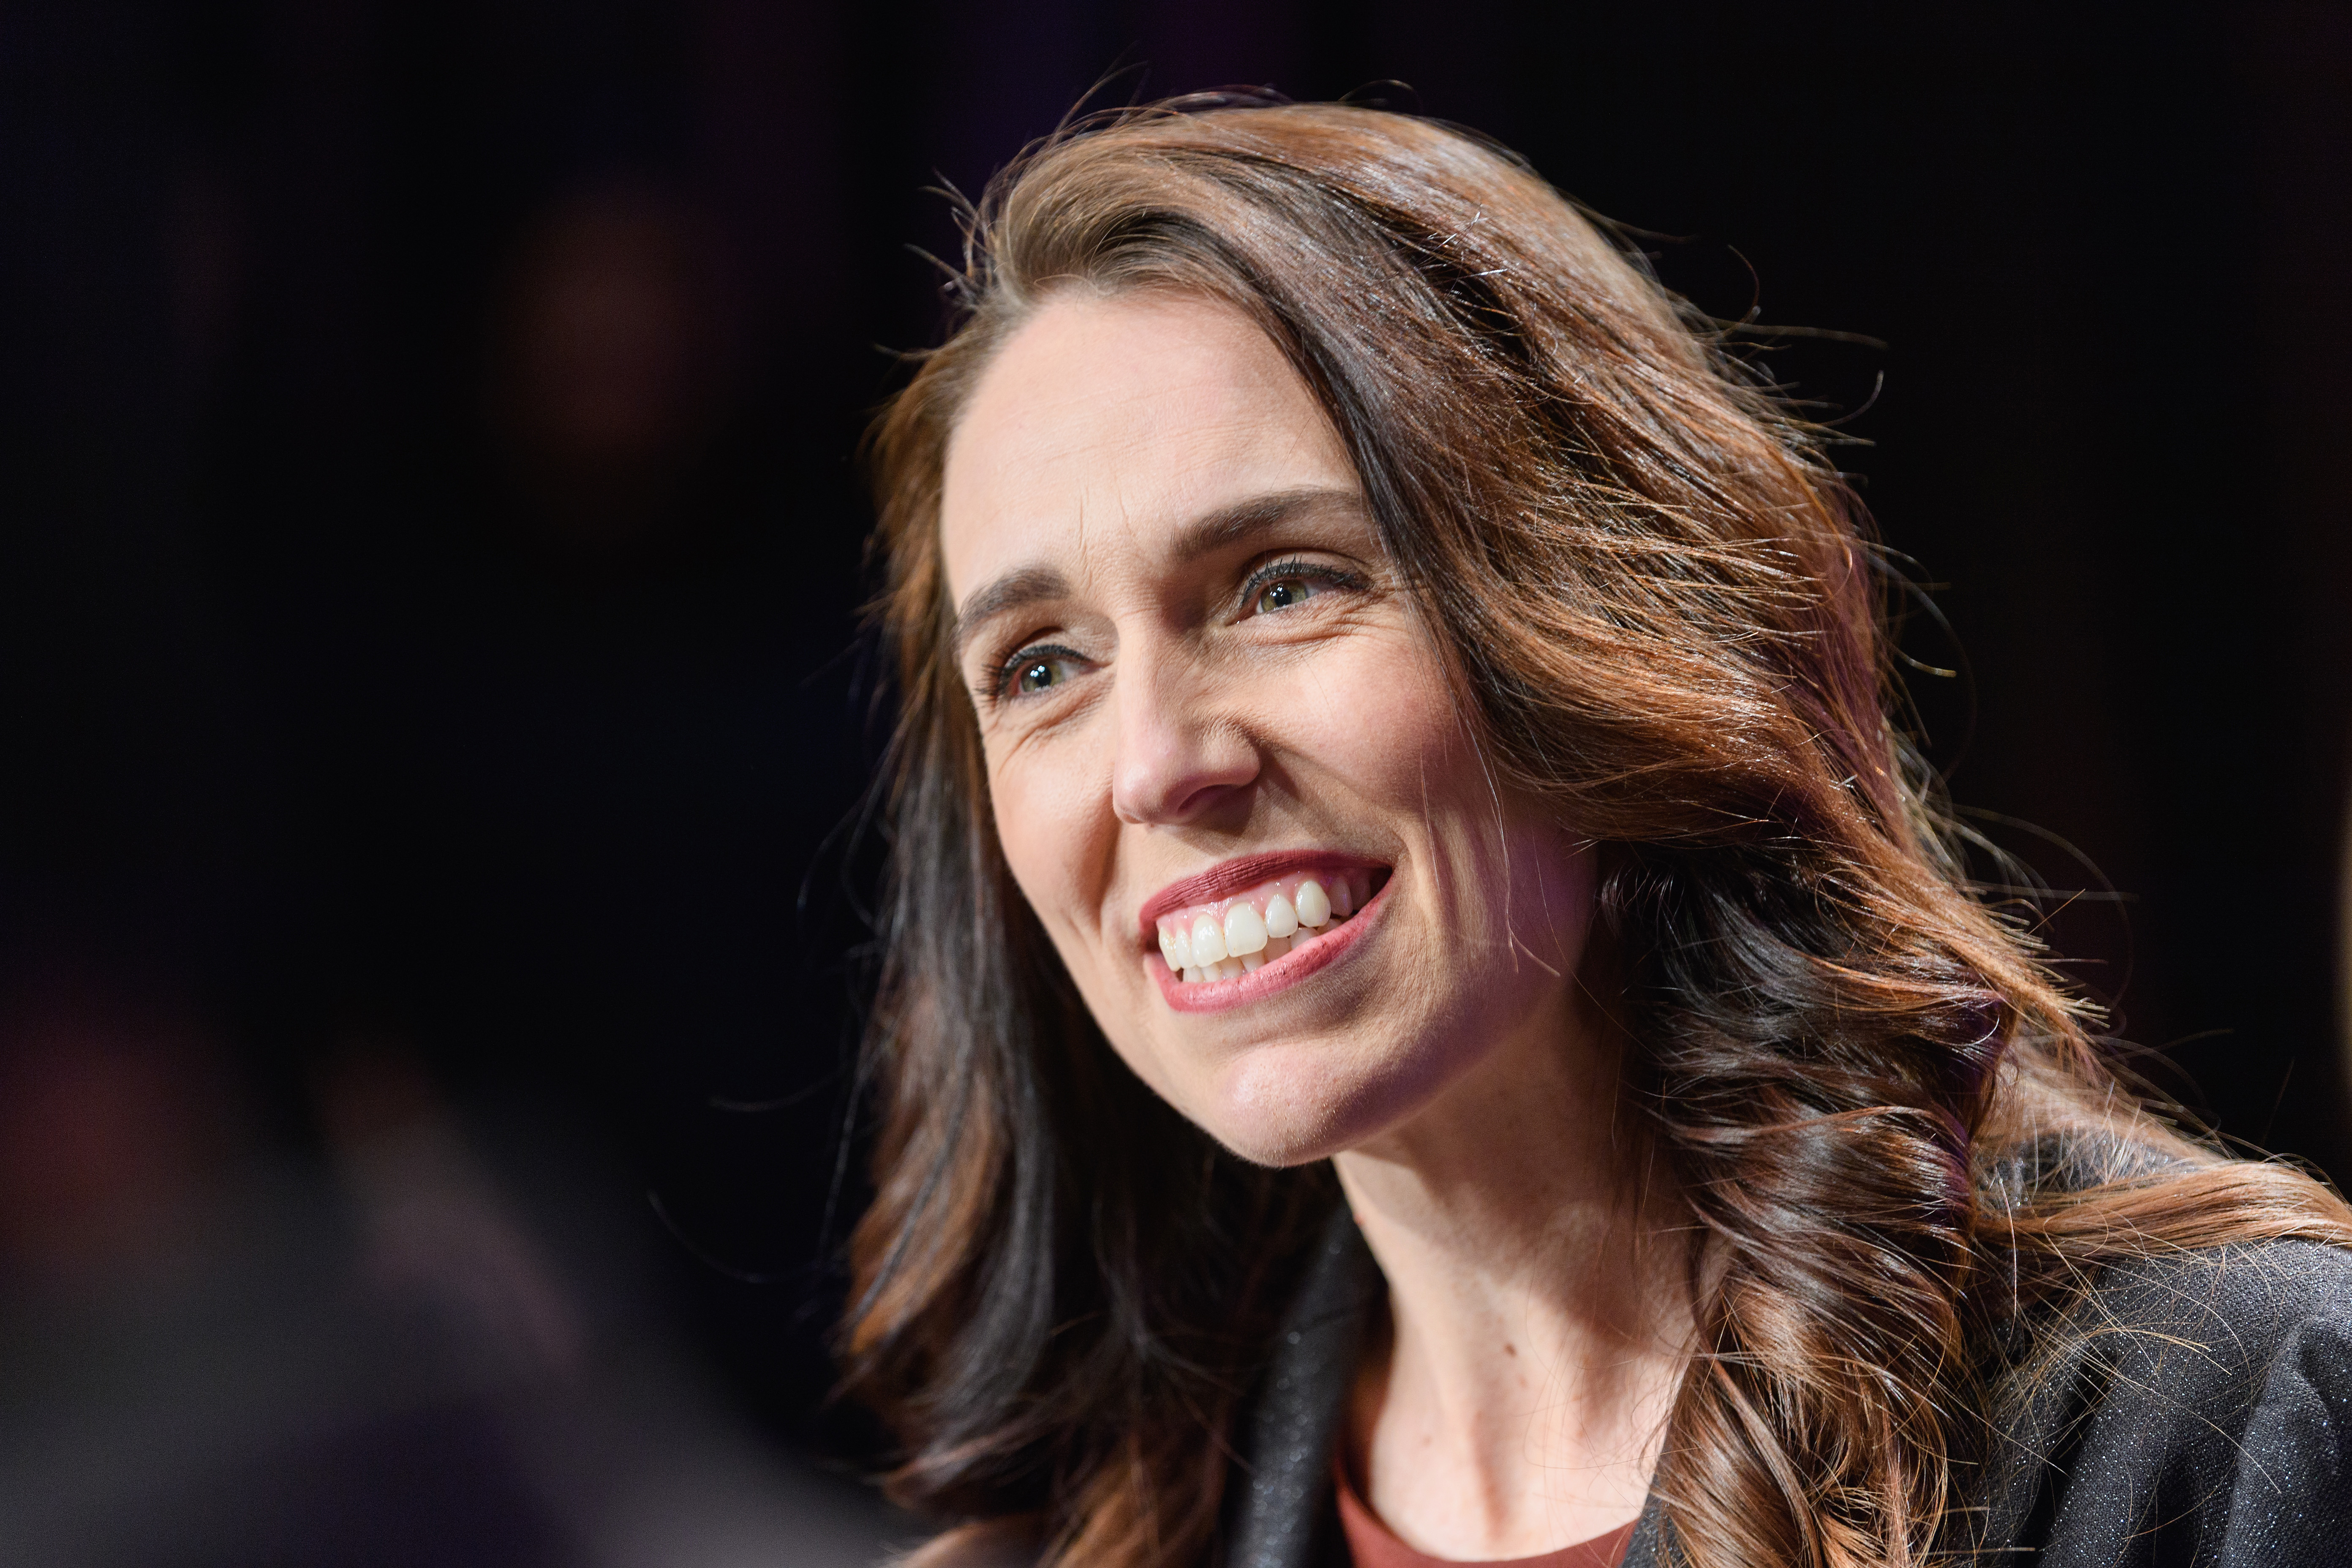 New Zealand Prime Minister Jacinda Ardern speaks to the media following The Press Leaders Debate at Christchurch Town Hall on October 06, 2020 in Christchurch, New Zealand.